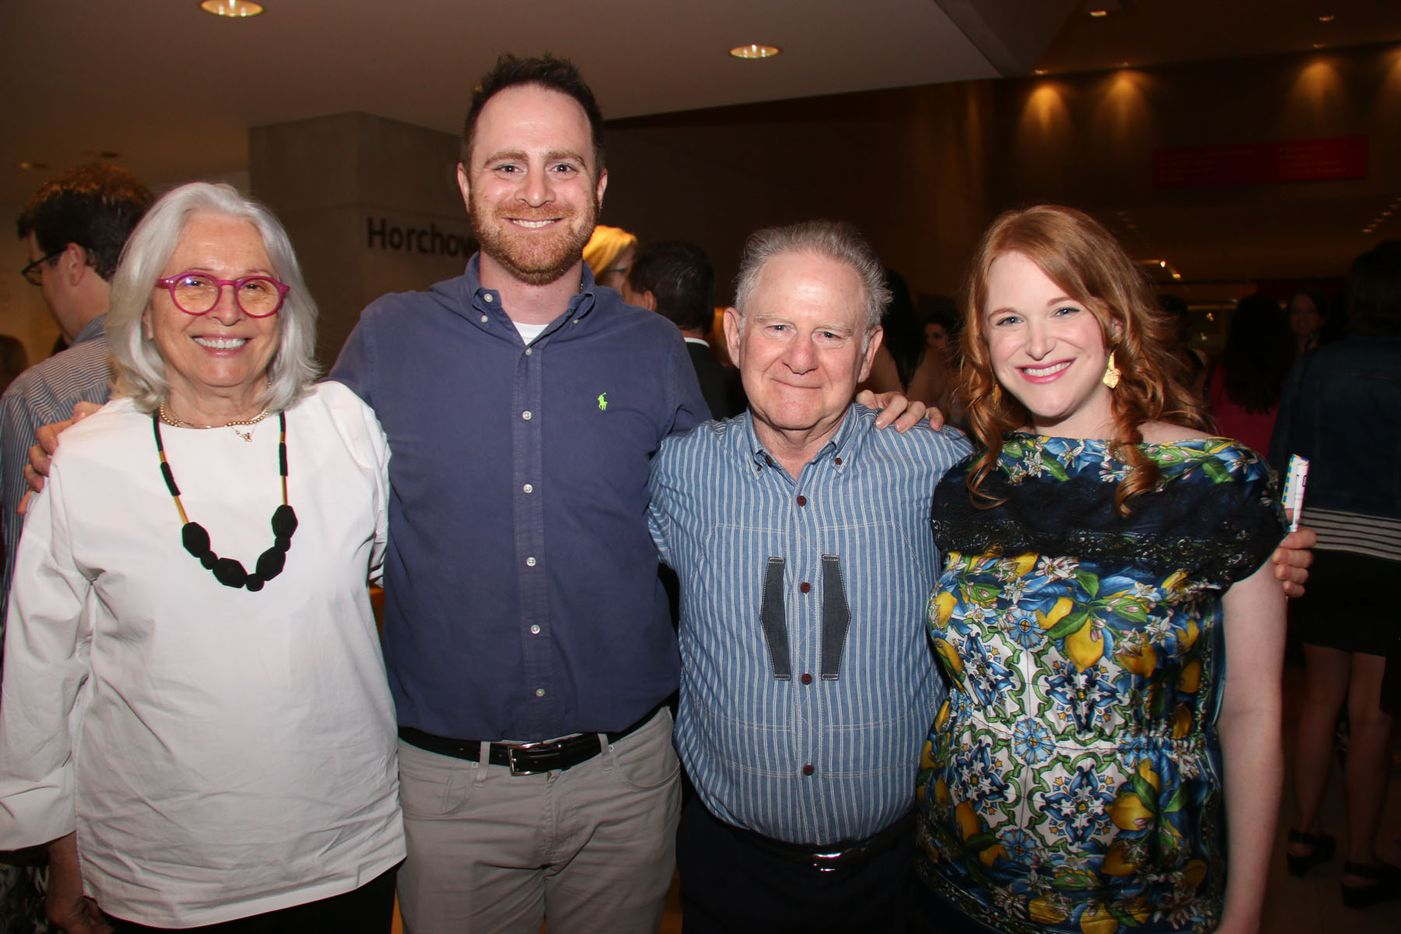 Co founder Anton Schlesinger with his wife and parents as Oral Fixation concluded its 4th season with the best of season four at the Dallas Museum of Art on August 15, 2015